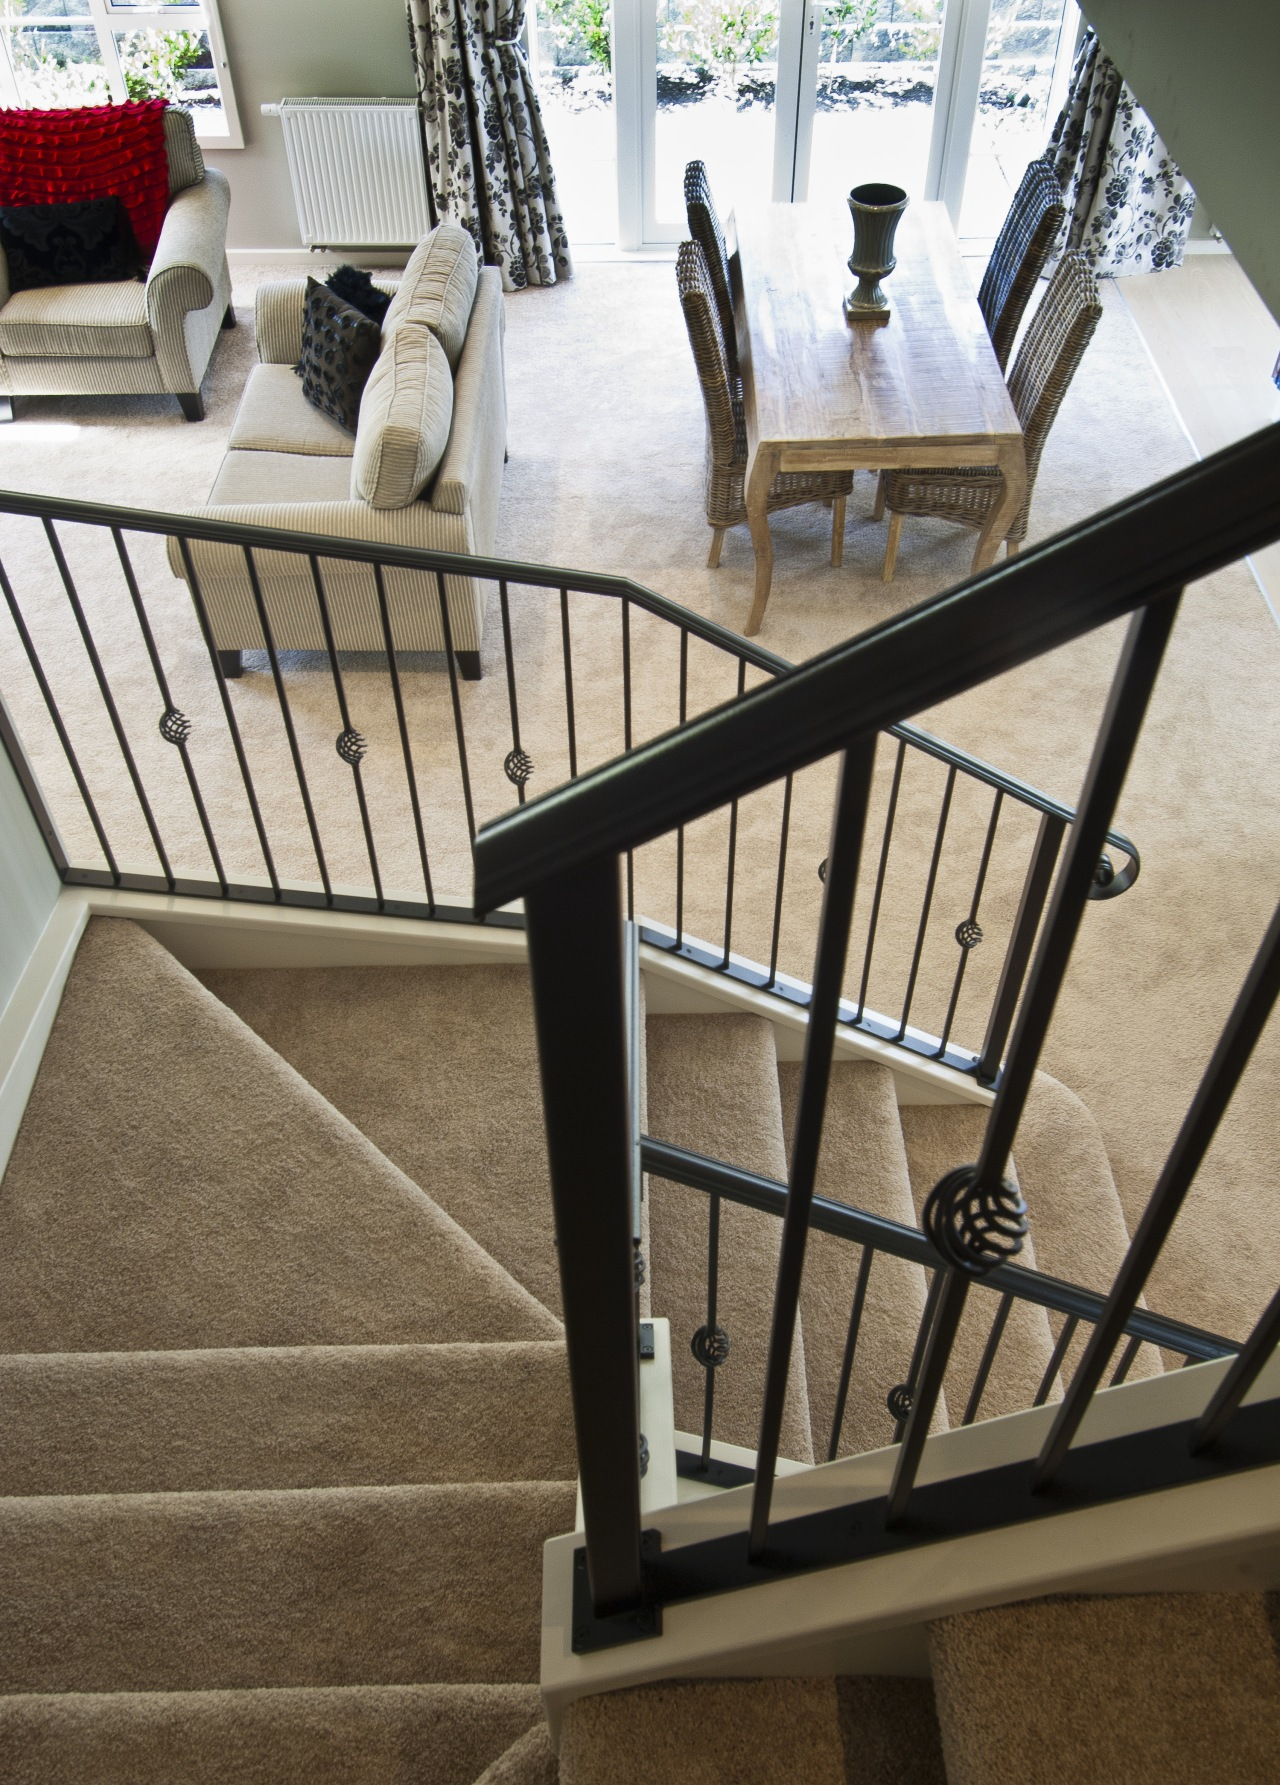 wrought iron banister carpeted stairs leading to lounge baluster, chair, floor, flooring, furniture, handrail, iron, product, stairs, table, brown, white